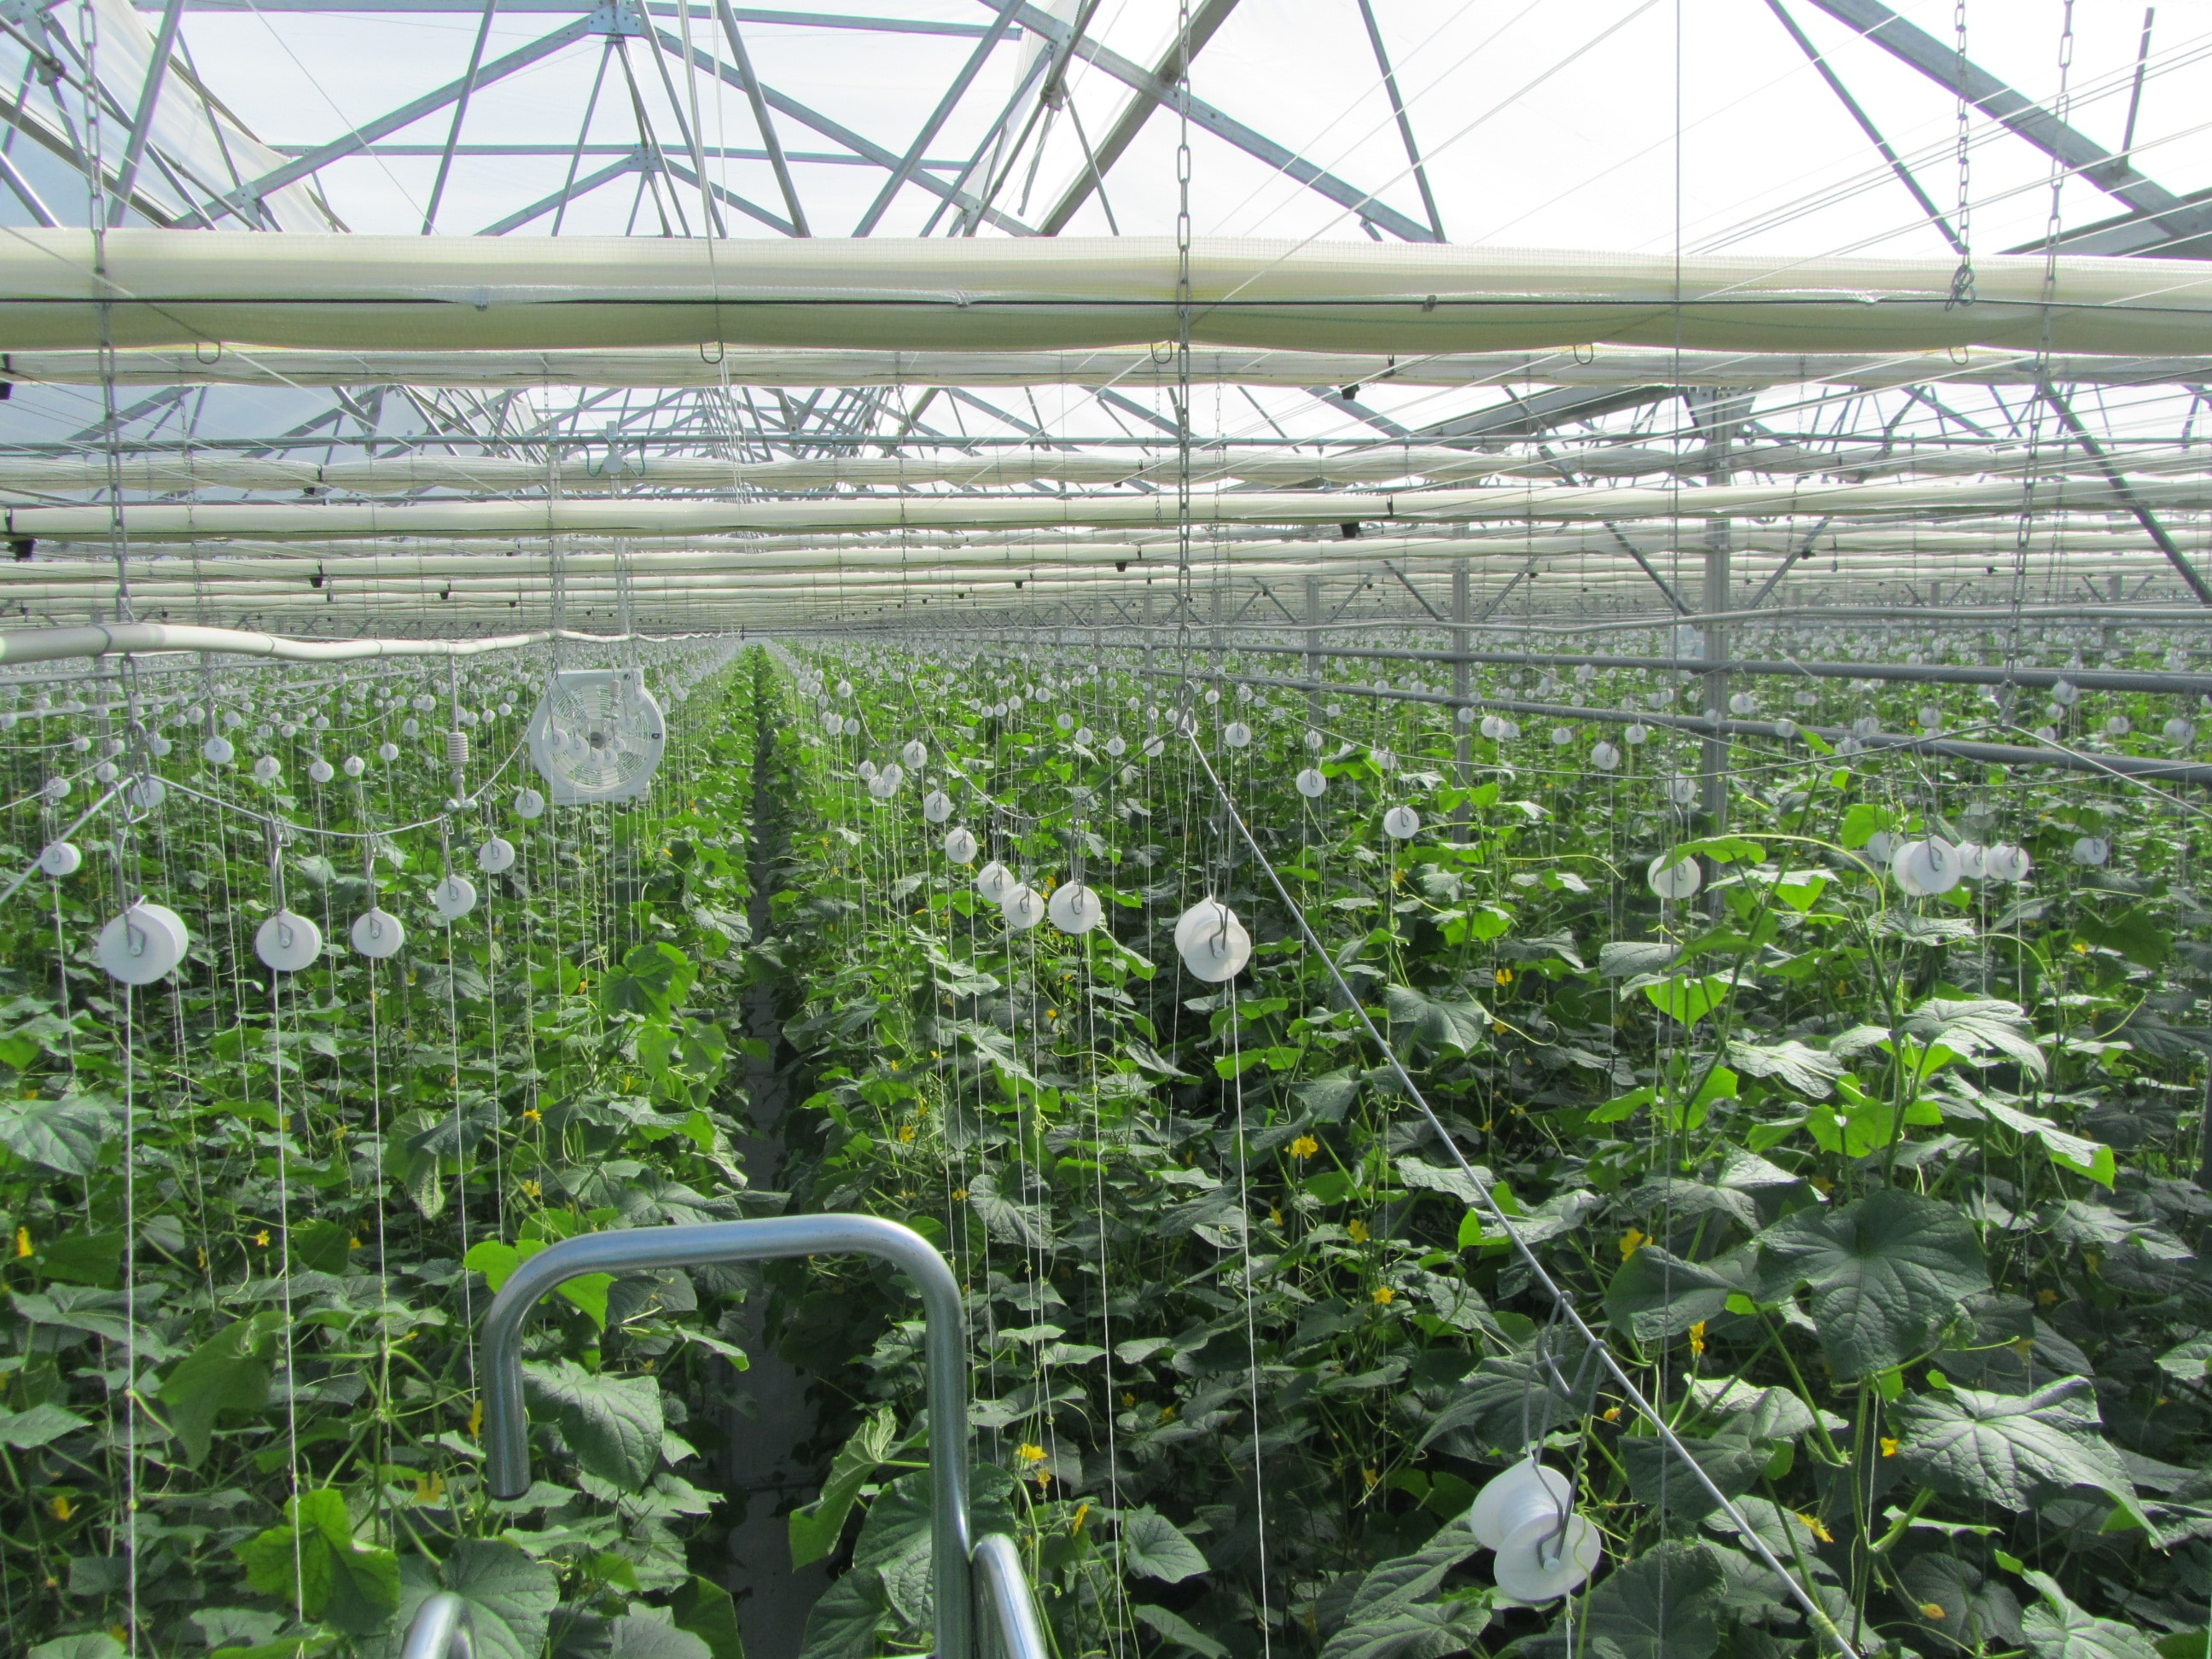 Trellised cucumber plants in a greenhouse